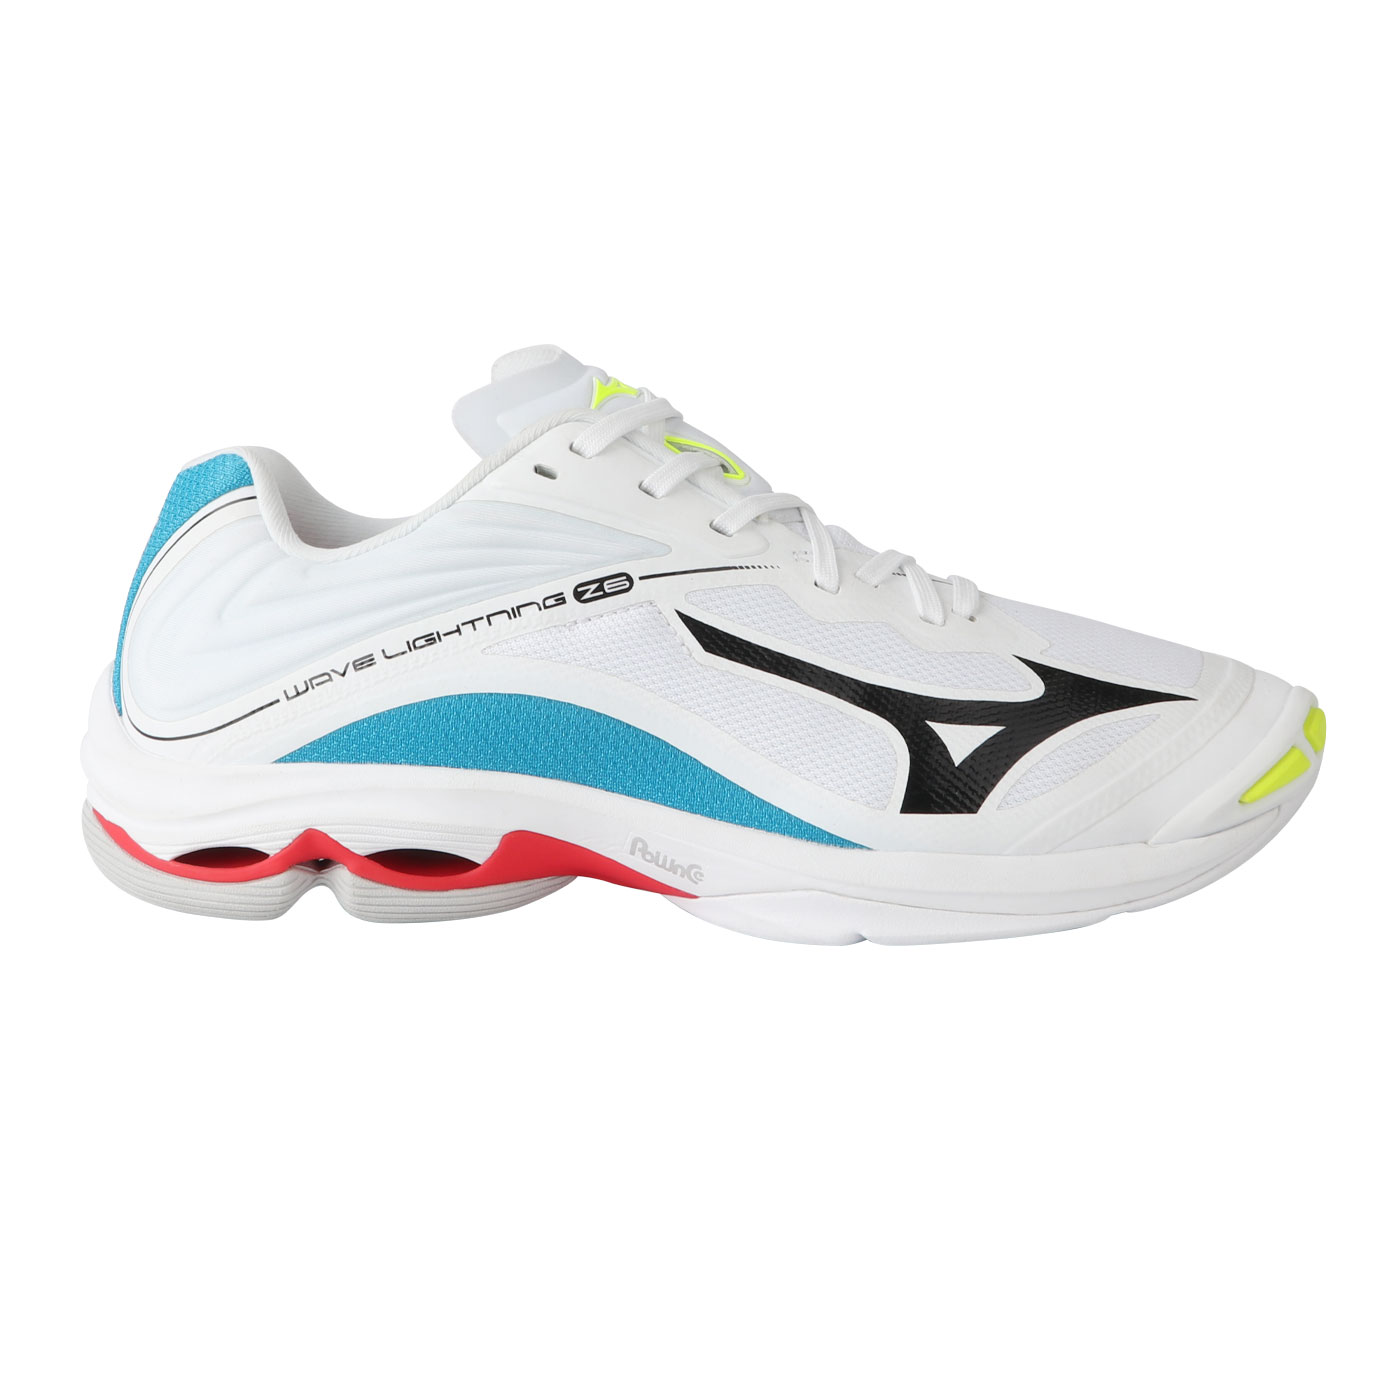 WAVE LIGHTNING Z6-WHITE/BLACK /DIVA BLUE